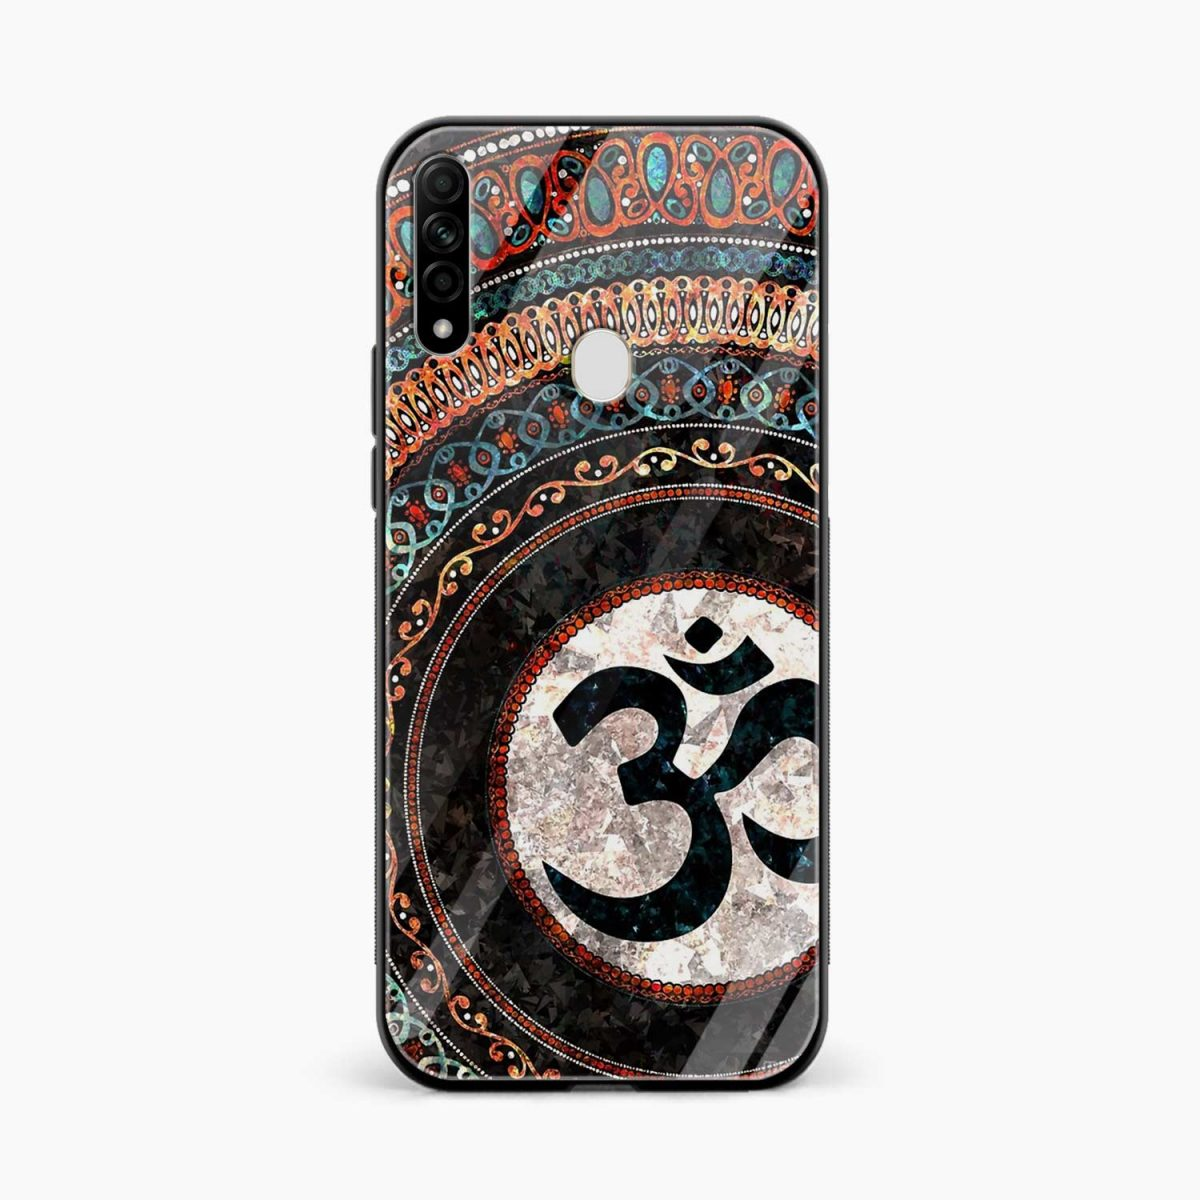 om glass front view oppo a31 back cover